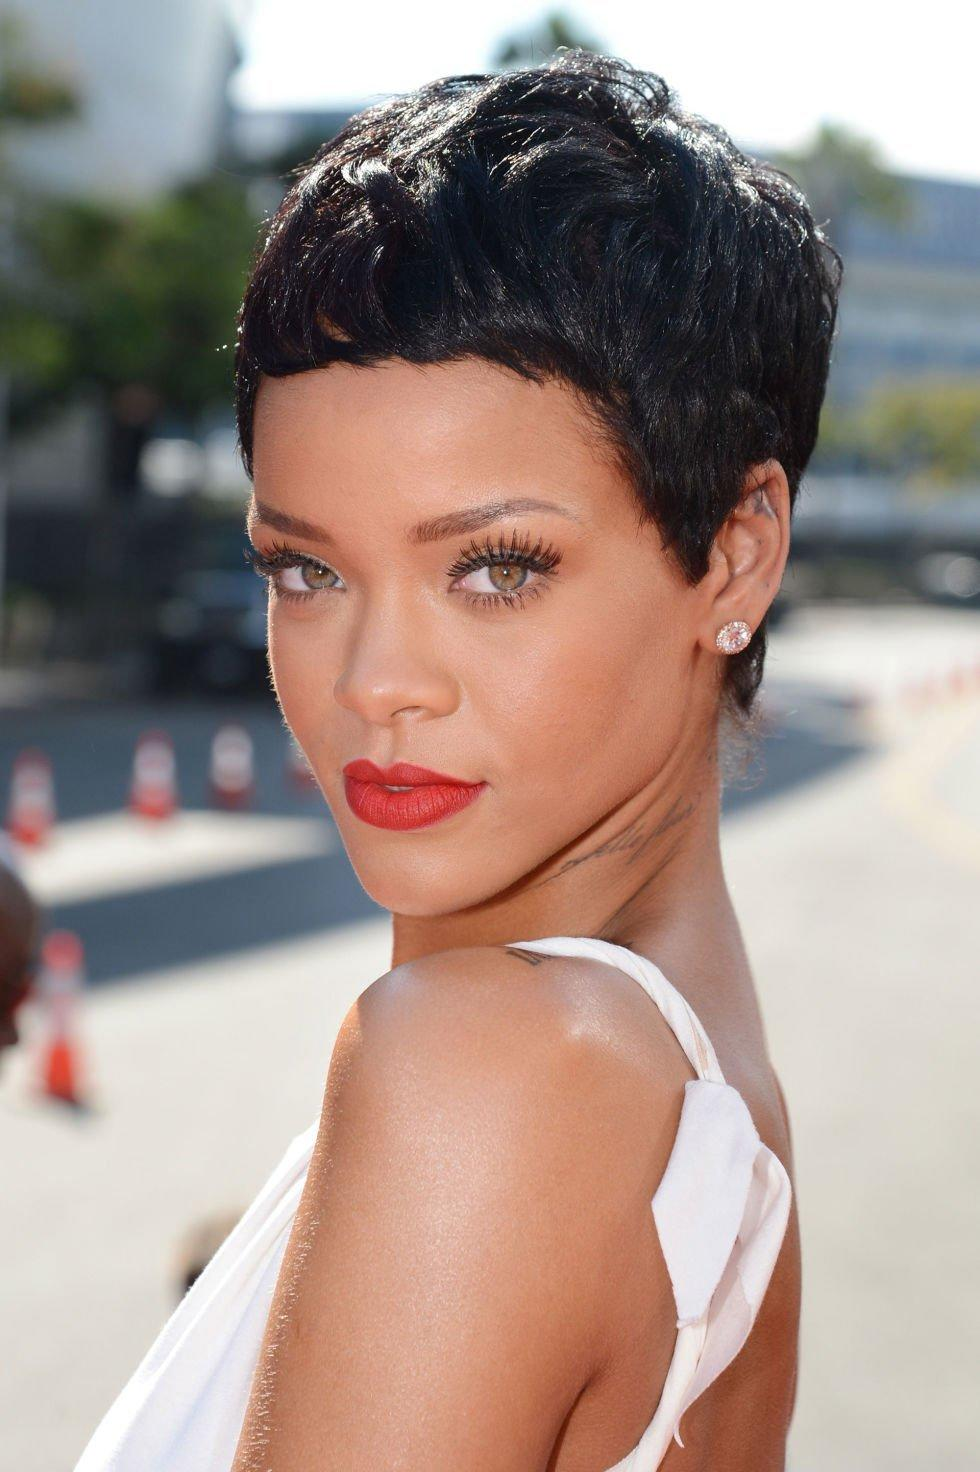 The Best Chic And Beautiful Short Hairstyles For Women Over 50 Pictures